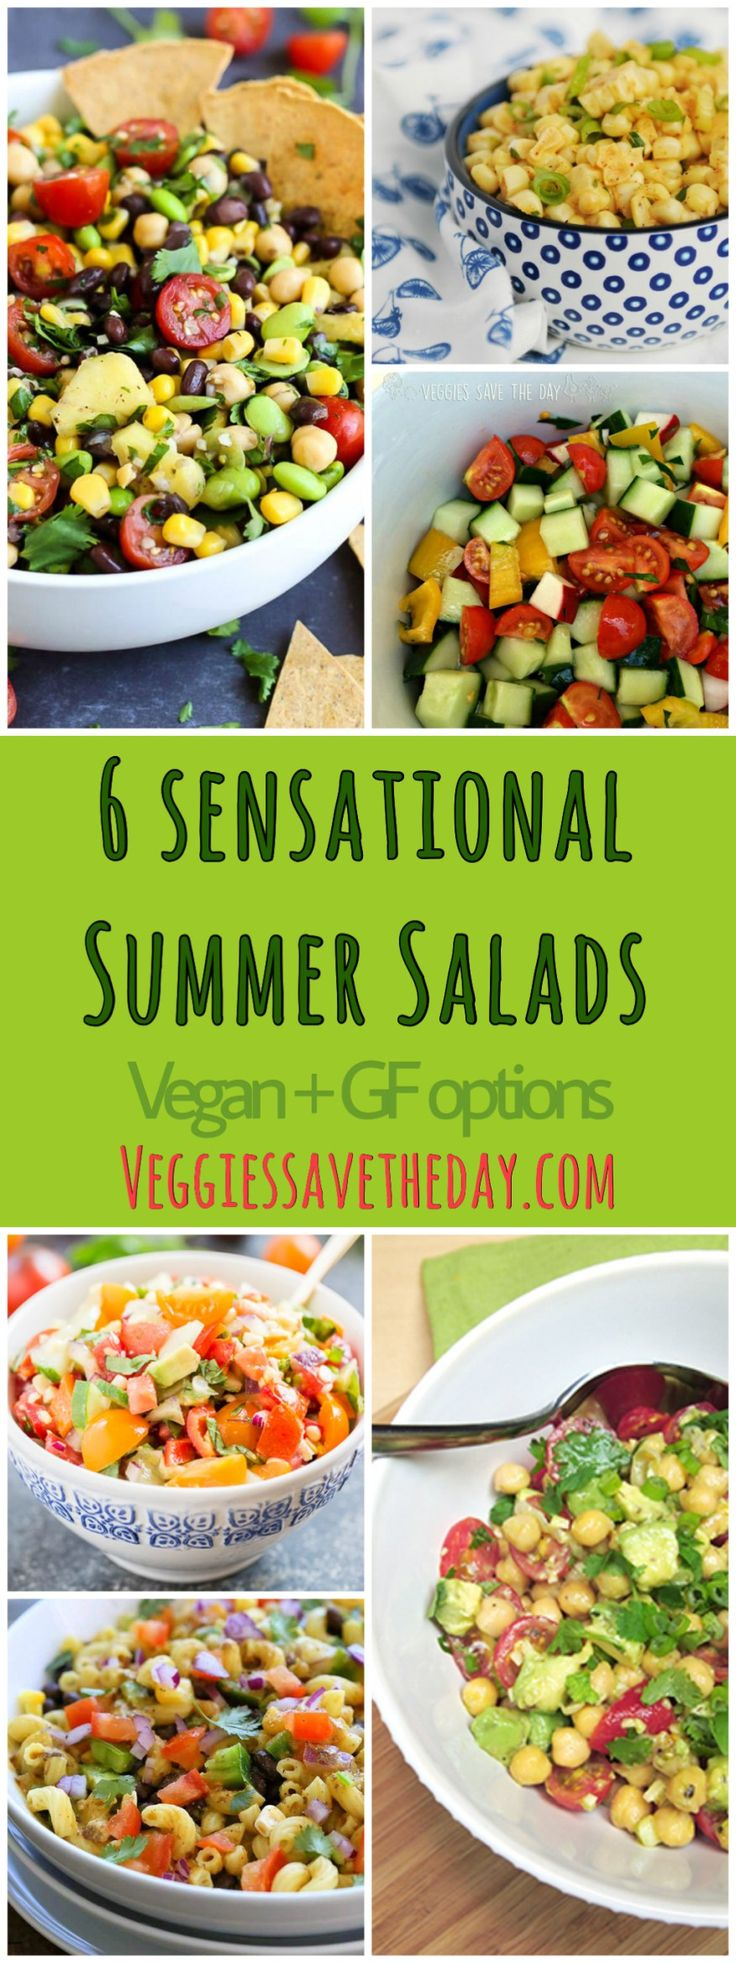 Beat the heat with these six sensational summer salads. They are bursting with fresh flavors from seasonal produce like tomatoes, cucumbers, and corn. Get the recipes by visiting www.veggiessavetheday.com, or pin and save for later! All vegan plus gluten-free options